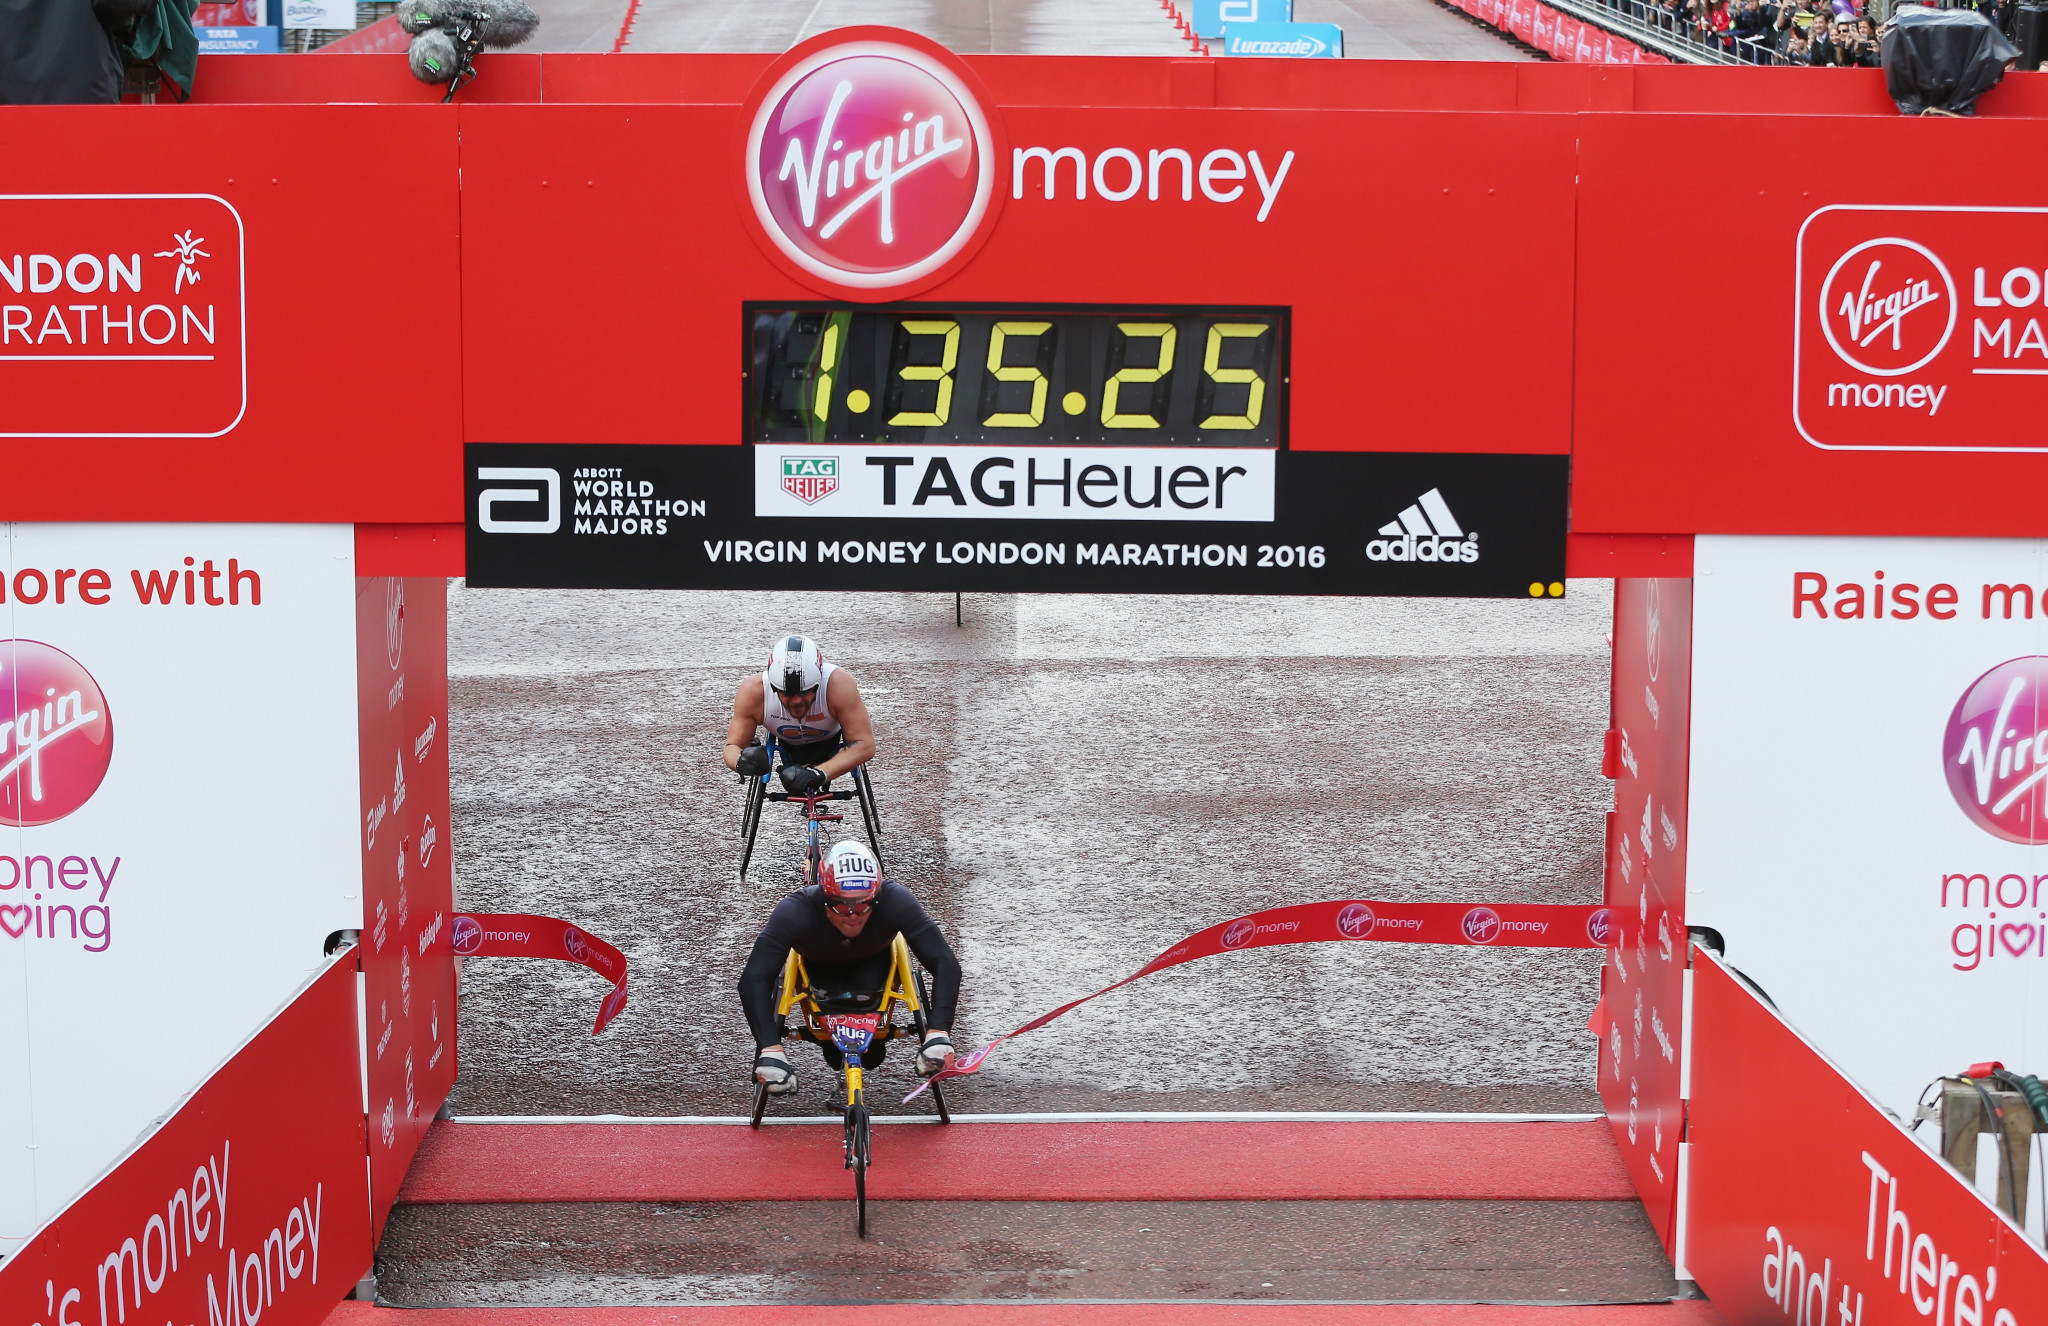 Swiss racers targeting wheelchair double at London Marathon